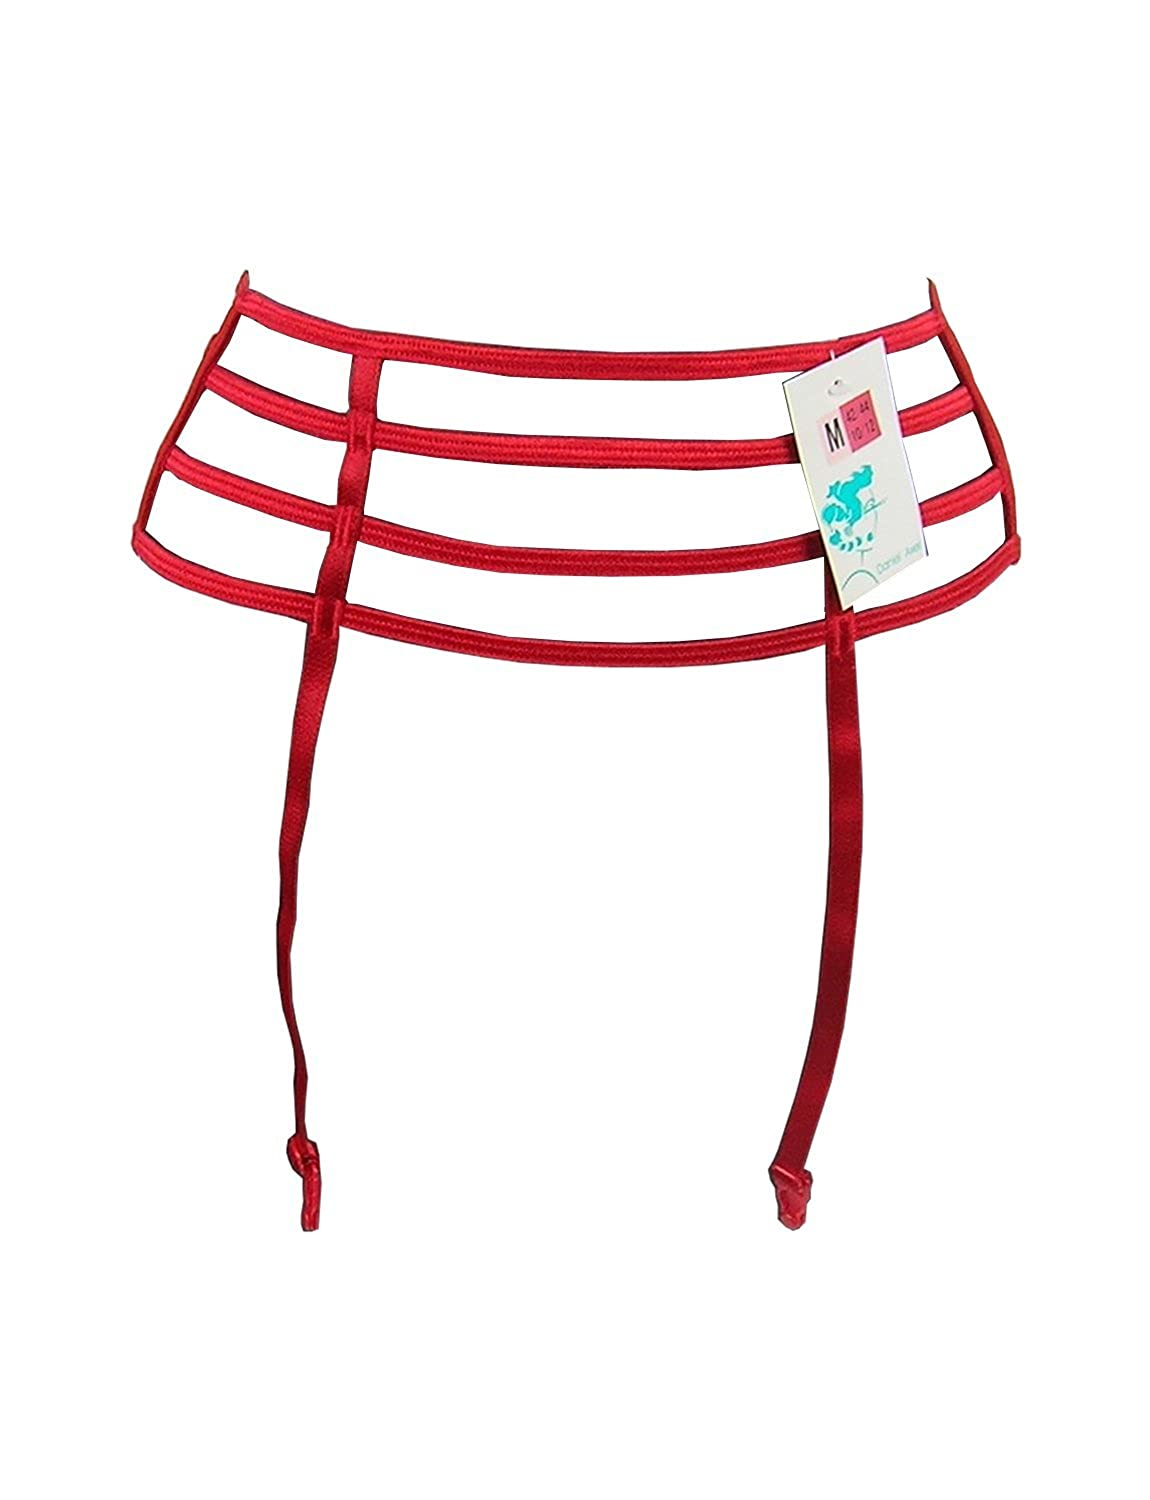 4-Bar Designer Suspender Belts - Red